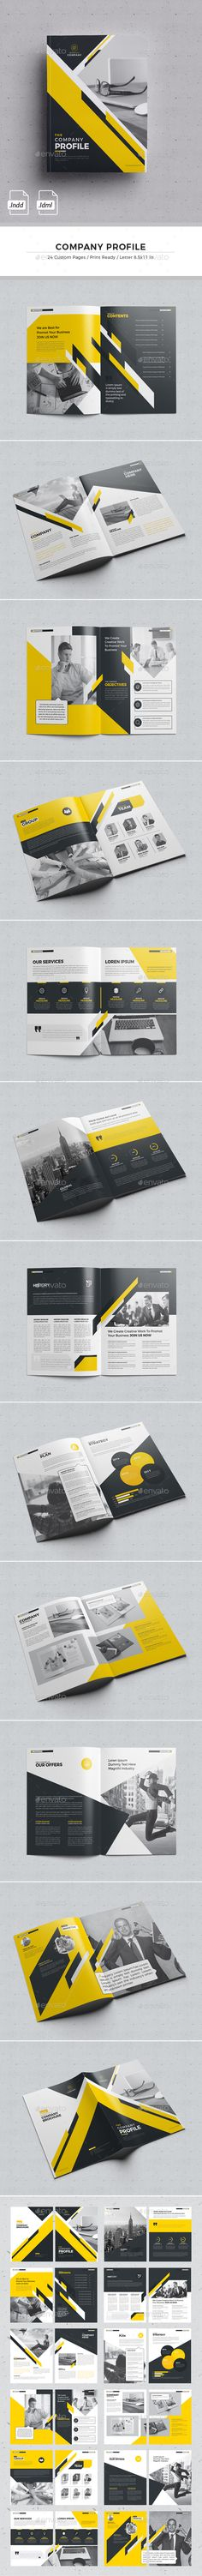 Company Profile — InDesign INDD #informational • Download ➝ https://graphicriver.net/item/company-profile/18792854?ref=pxcr